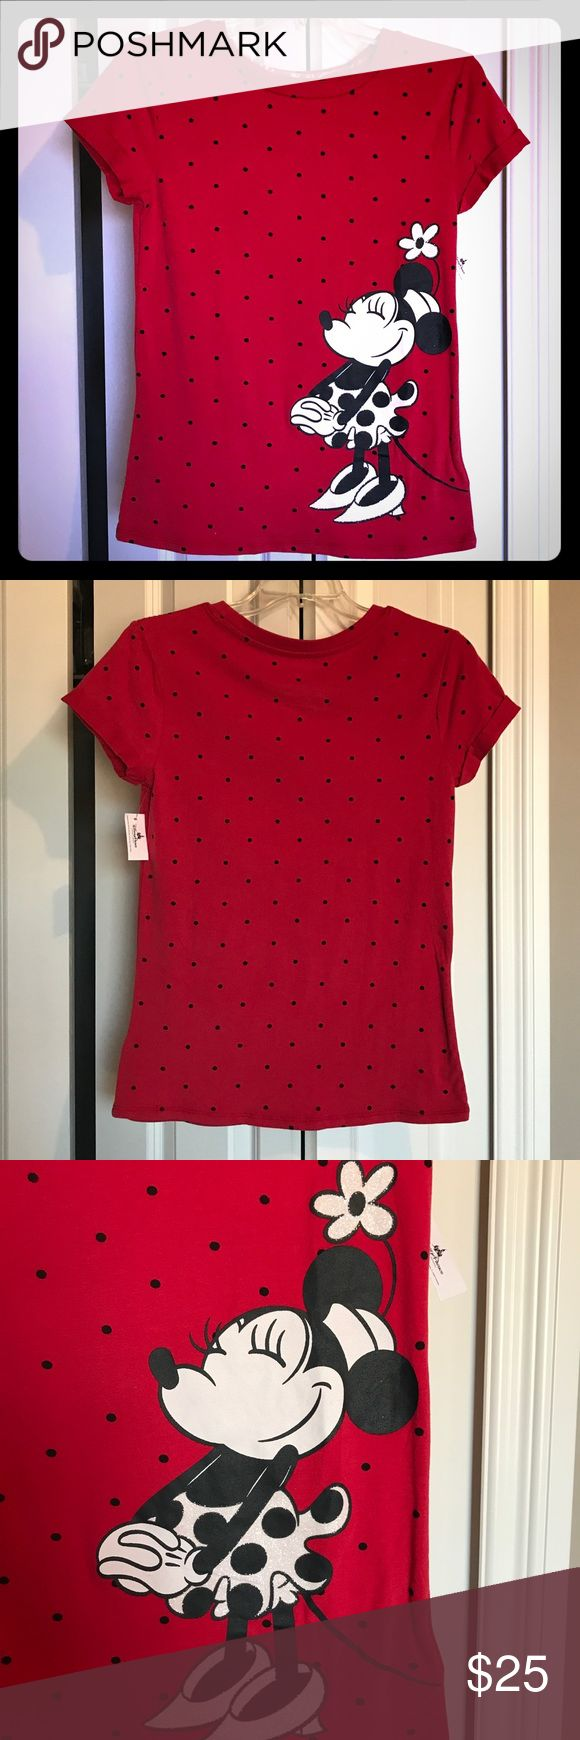 Minnie Mouse Dots Shirt Brand new with tags!! Purchased at Disney Springs!! Women's XS t-shirt in the ever popular Minnie Dots Was $35 with tax. Sleeves are rolled, Minnie is a vinyl print with sparkly white glitter on her skirt and flower. Softest fabric, and stretchy! No rips, stains, or tears.  No trades. Disney Tops Tees - Short Sleeve